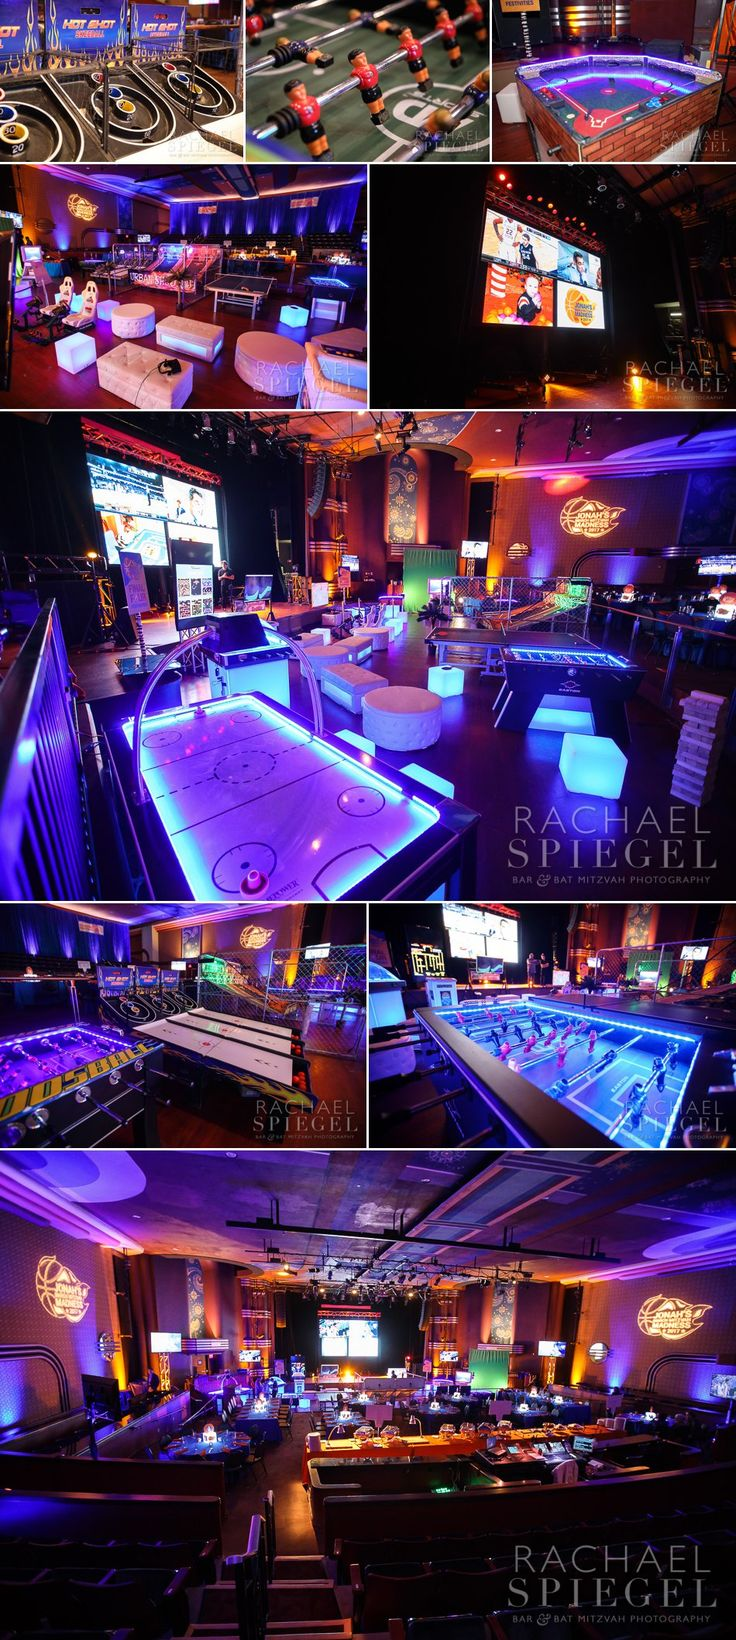 March Madness Basketball Theme | Gaming area with huge video wall, seating and over a dozen activities produced vy Innovative Party Planners | www.innovativepartyplanners.com  |  Photos by Rachael Spiegel Photography Blog – Maryland Bar and Bat Mitzvah Photographer | Decor & Details – Jonah's Bar Mitzvah – Bethesda, Md.